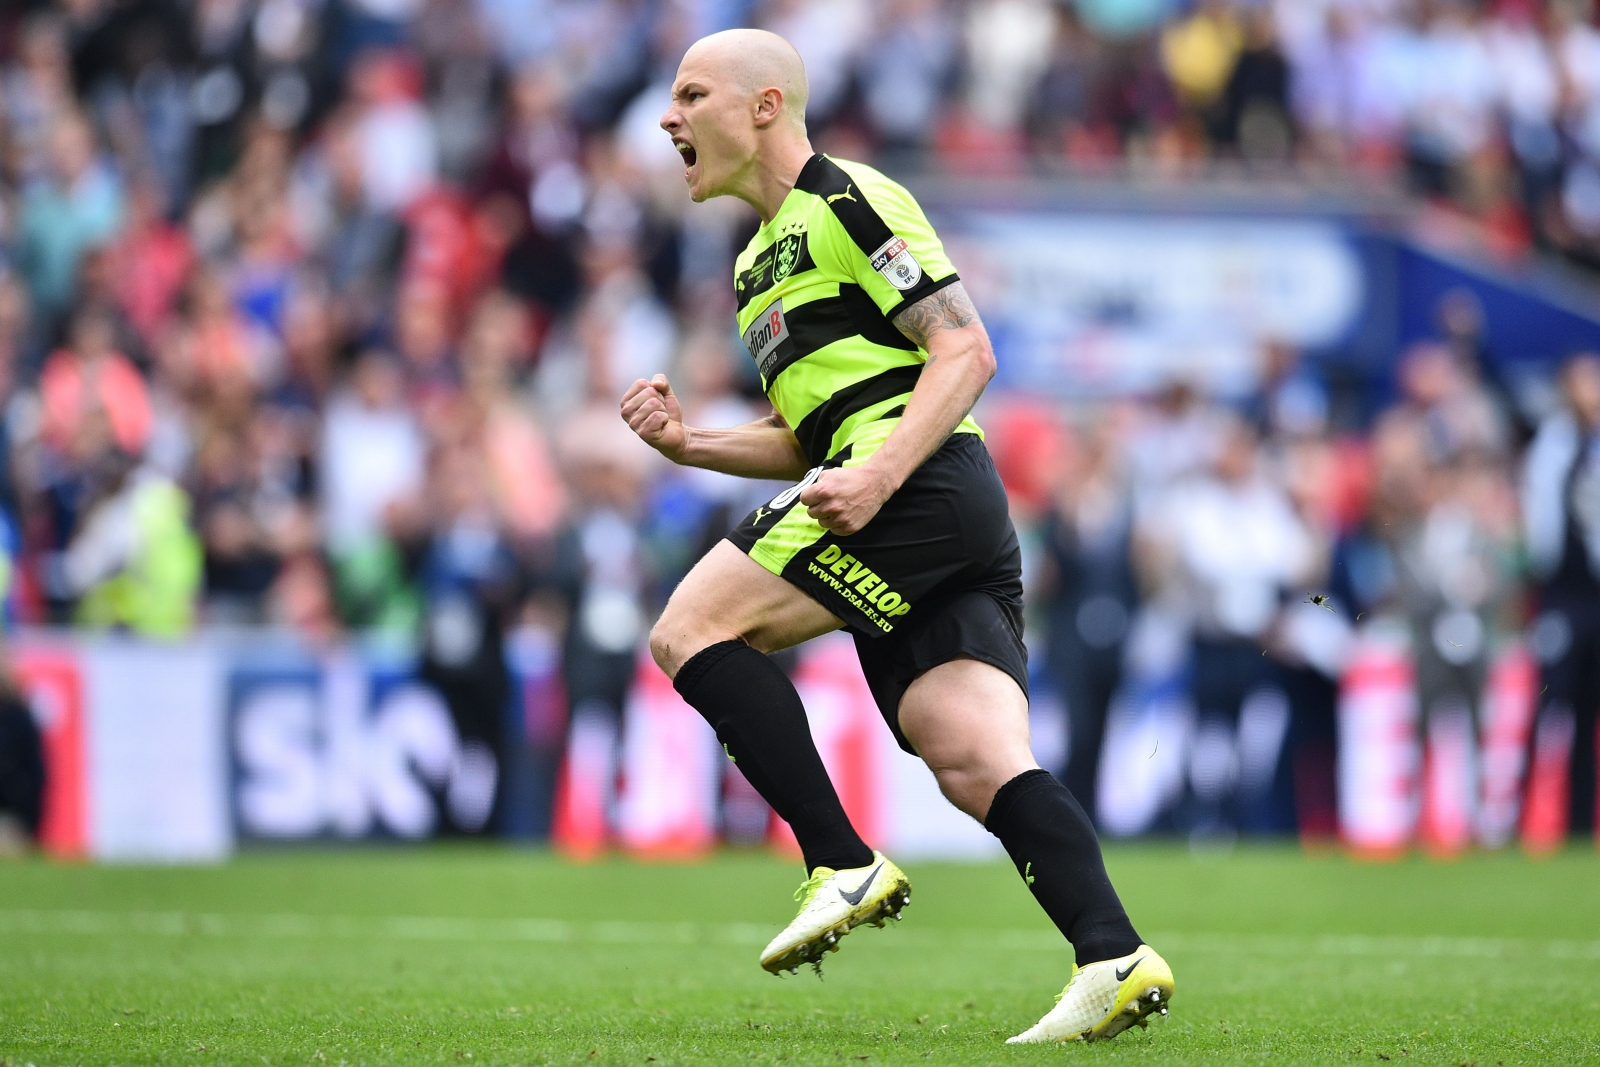 Mooy to sign on at Huddersfield for $16 million